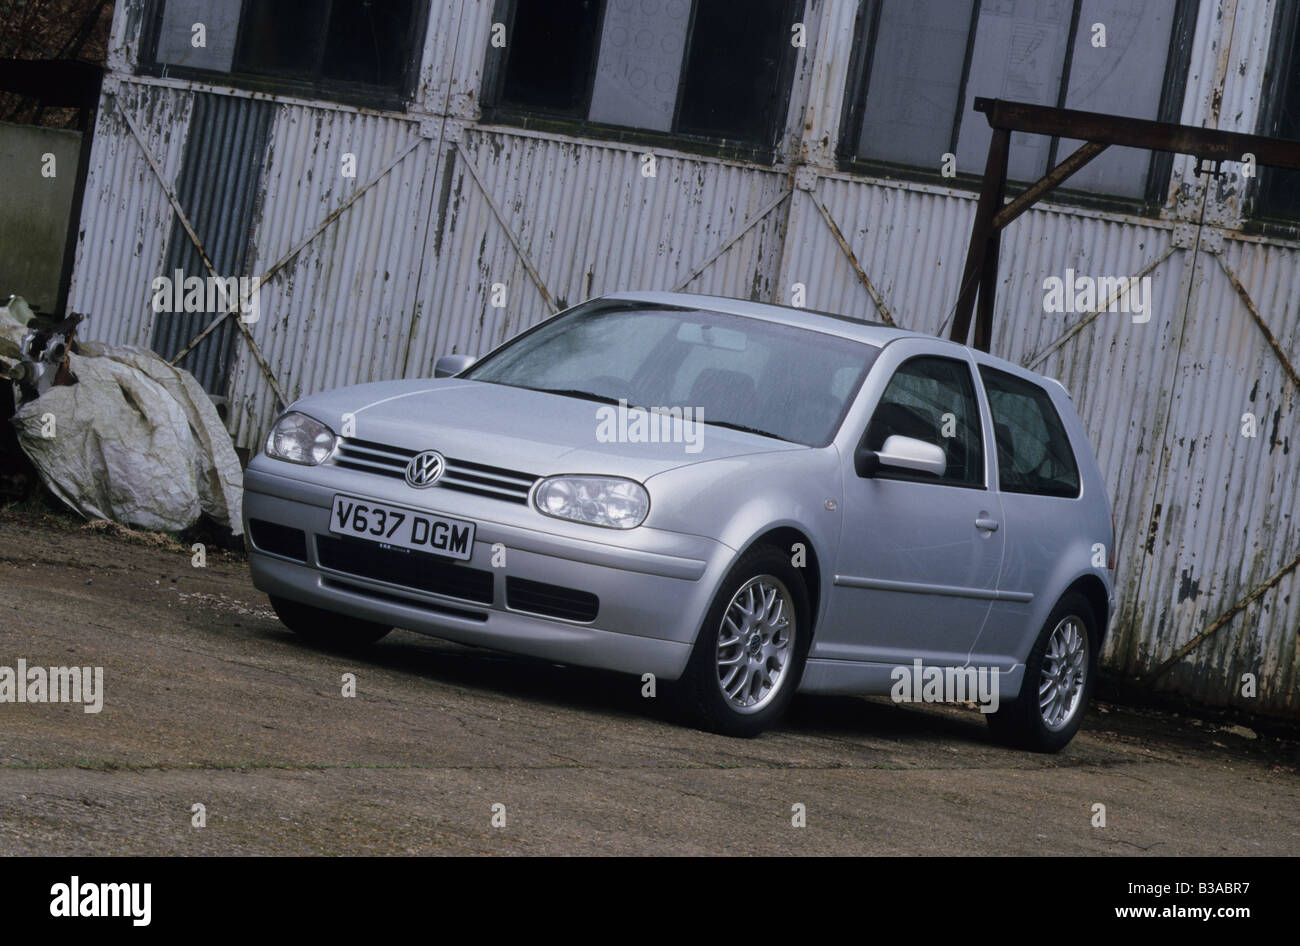 hight resolution of volkswagen golf gti mk4